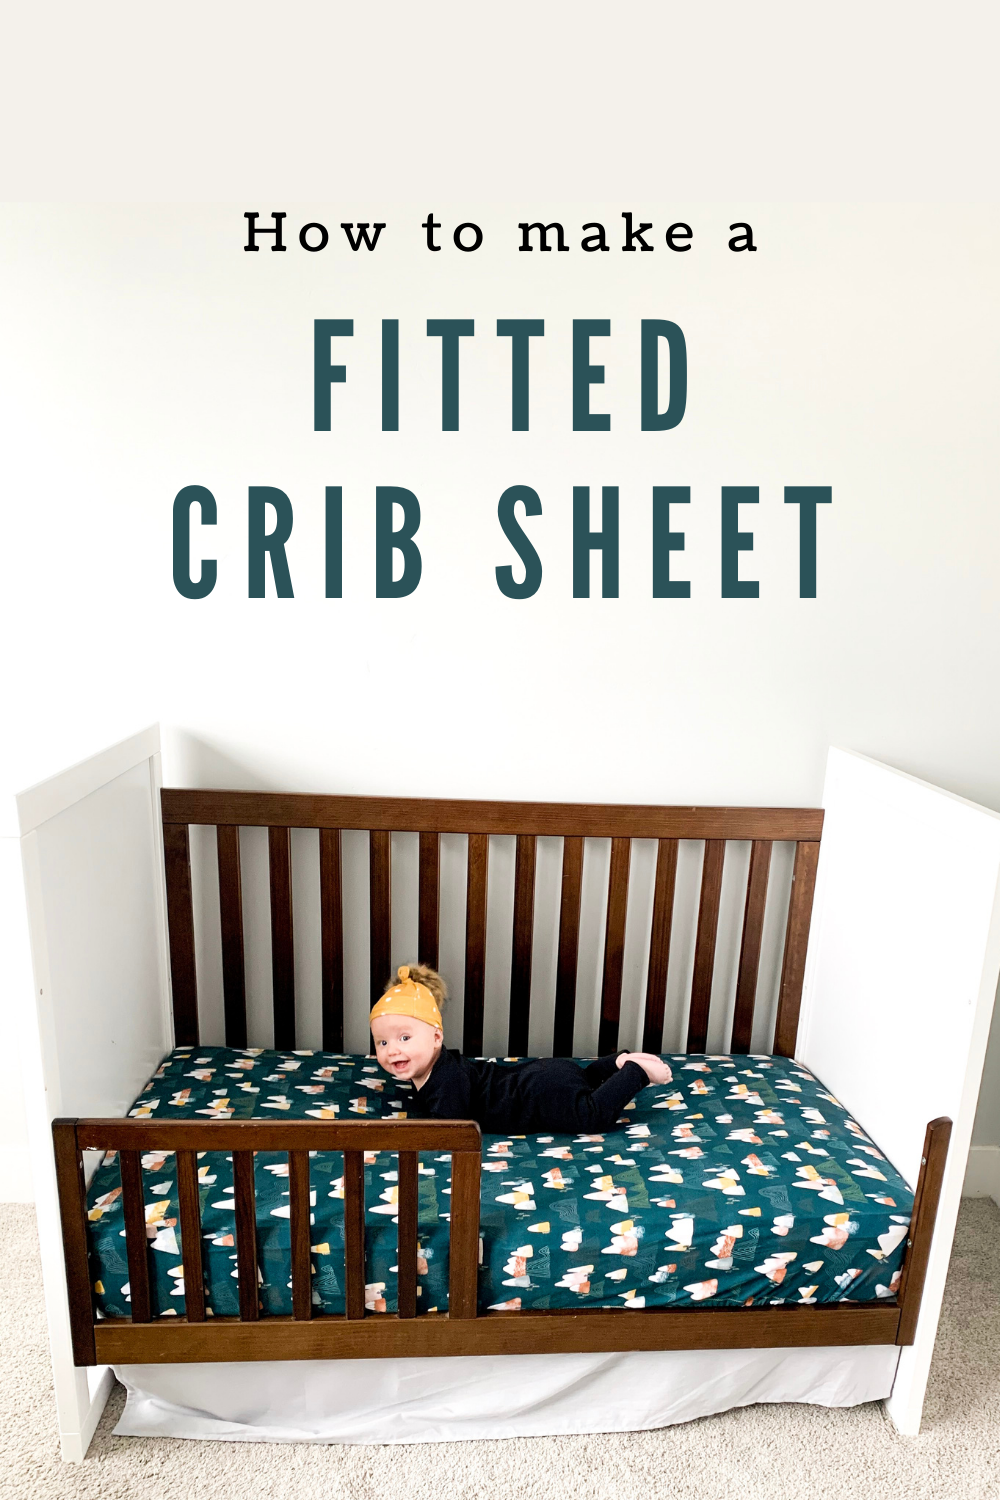 Baby on a modern crib with a green patterned fitted crib sheet.